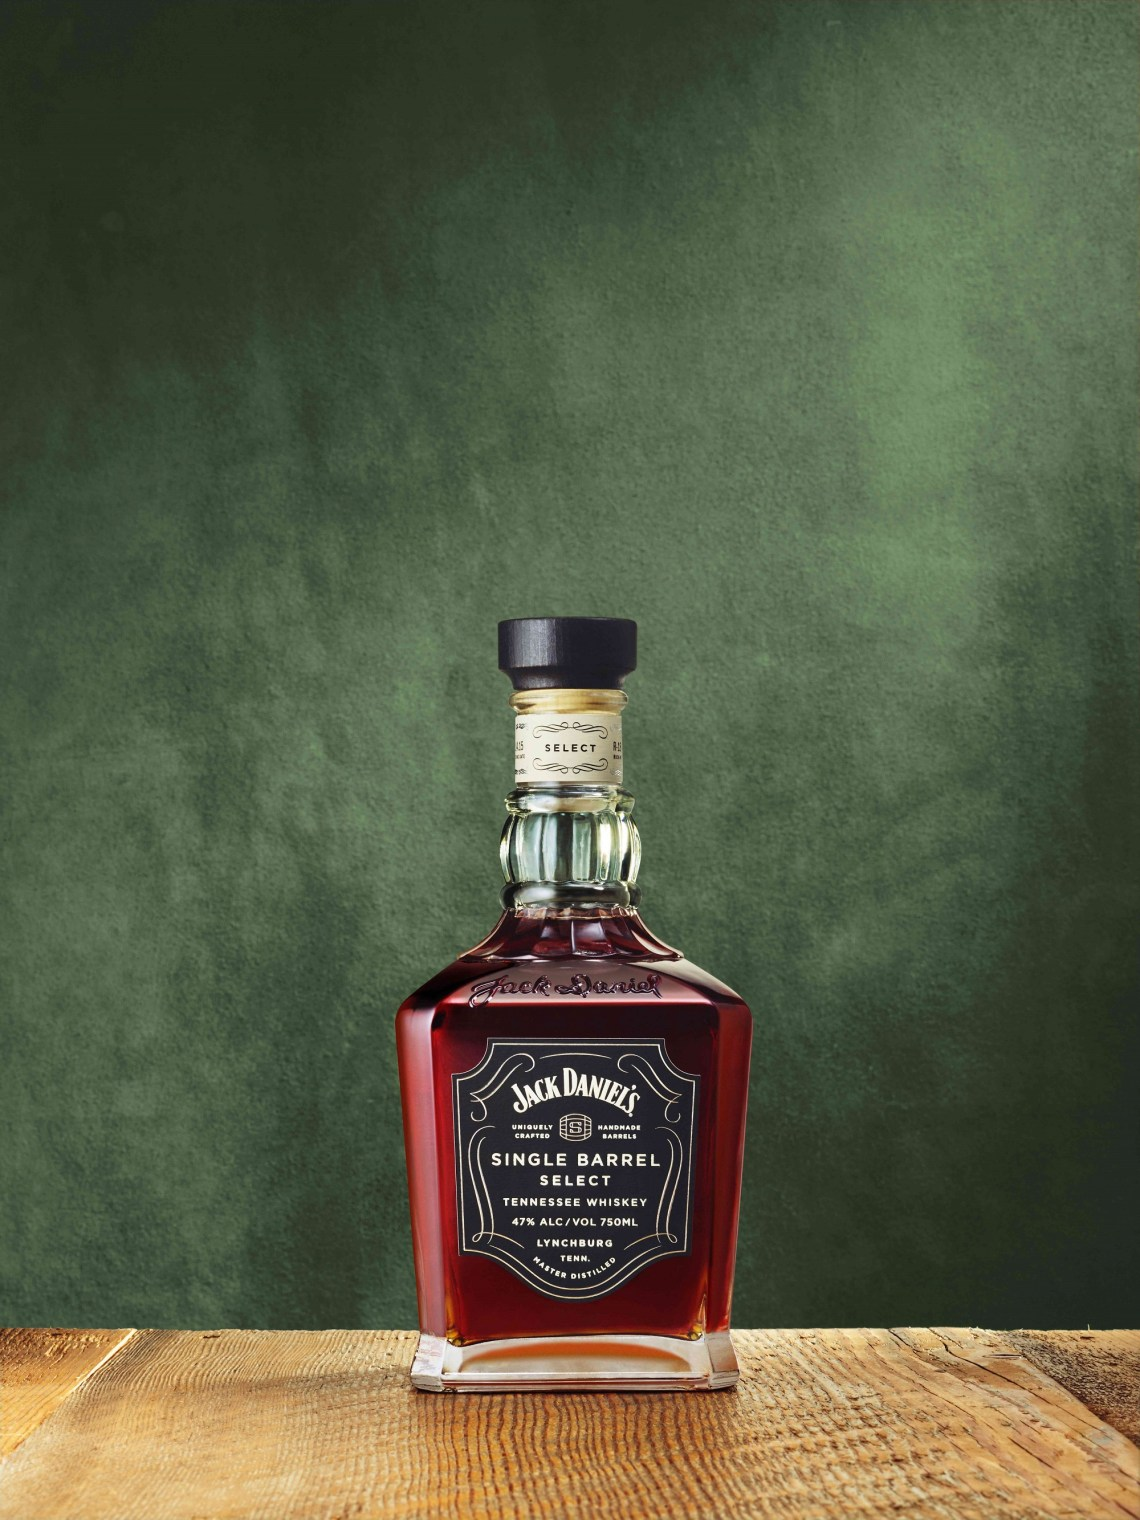 Jack Daniel's Single Barrel Select Tennessee Whiskey (2015)